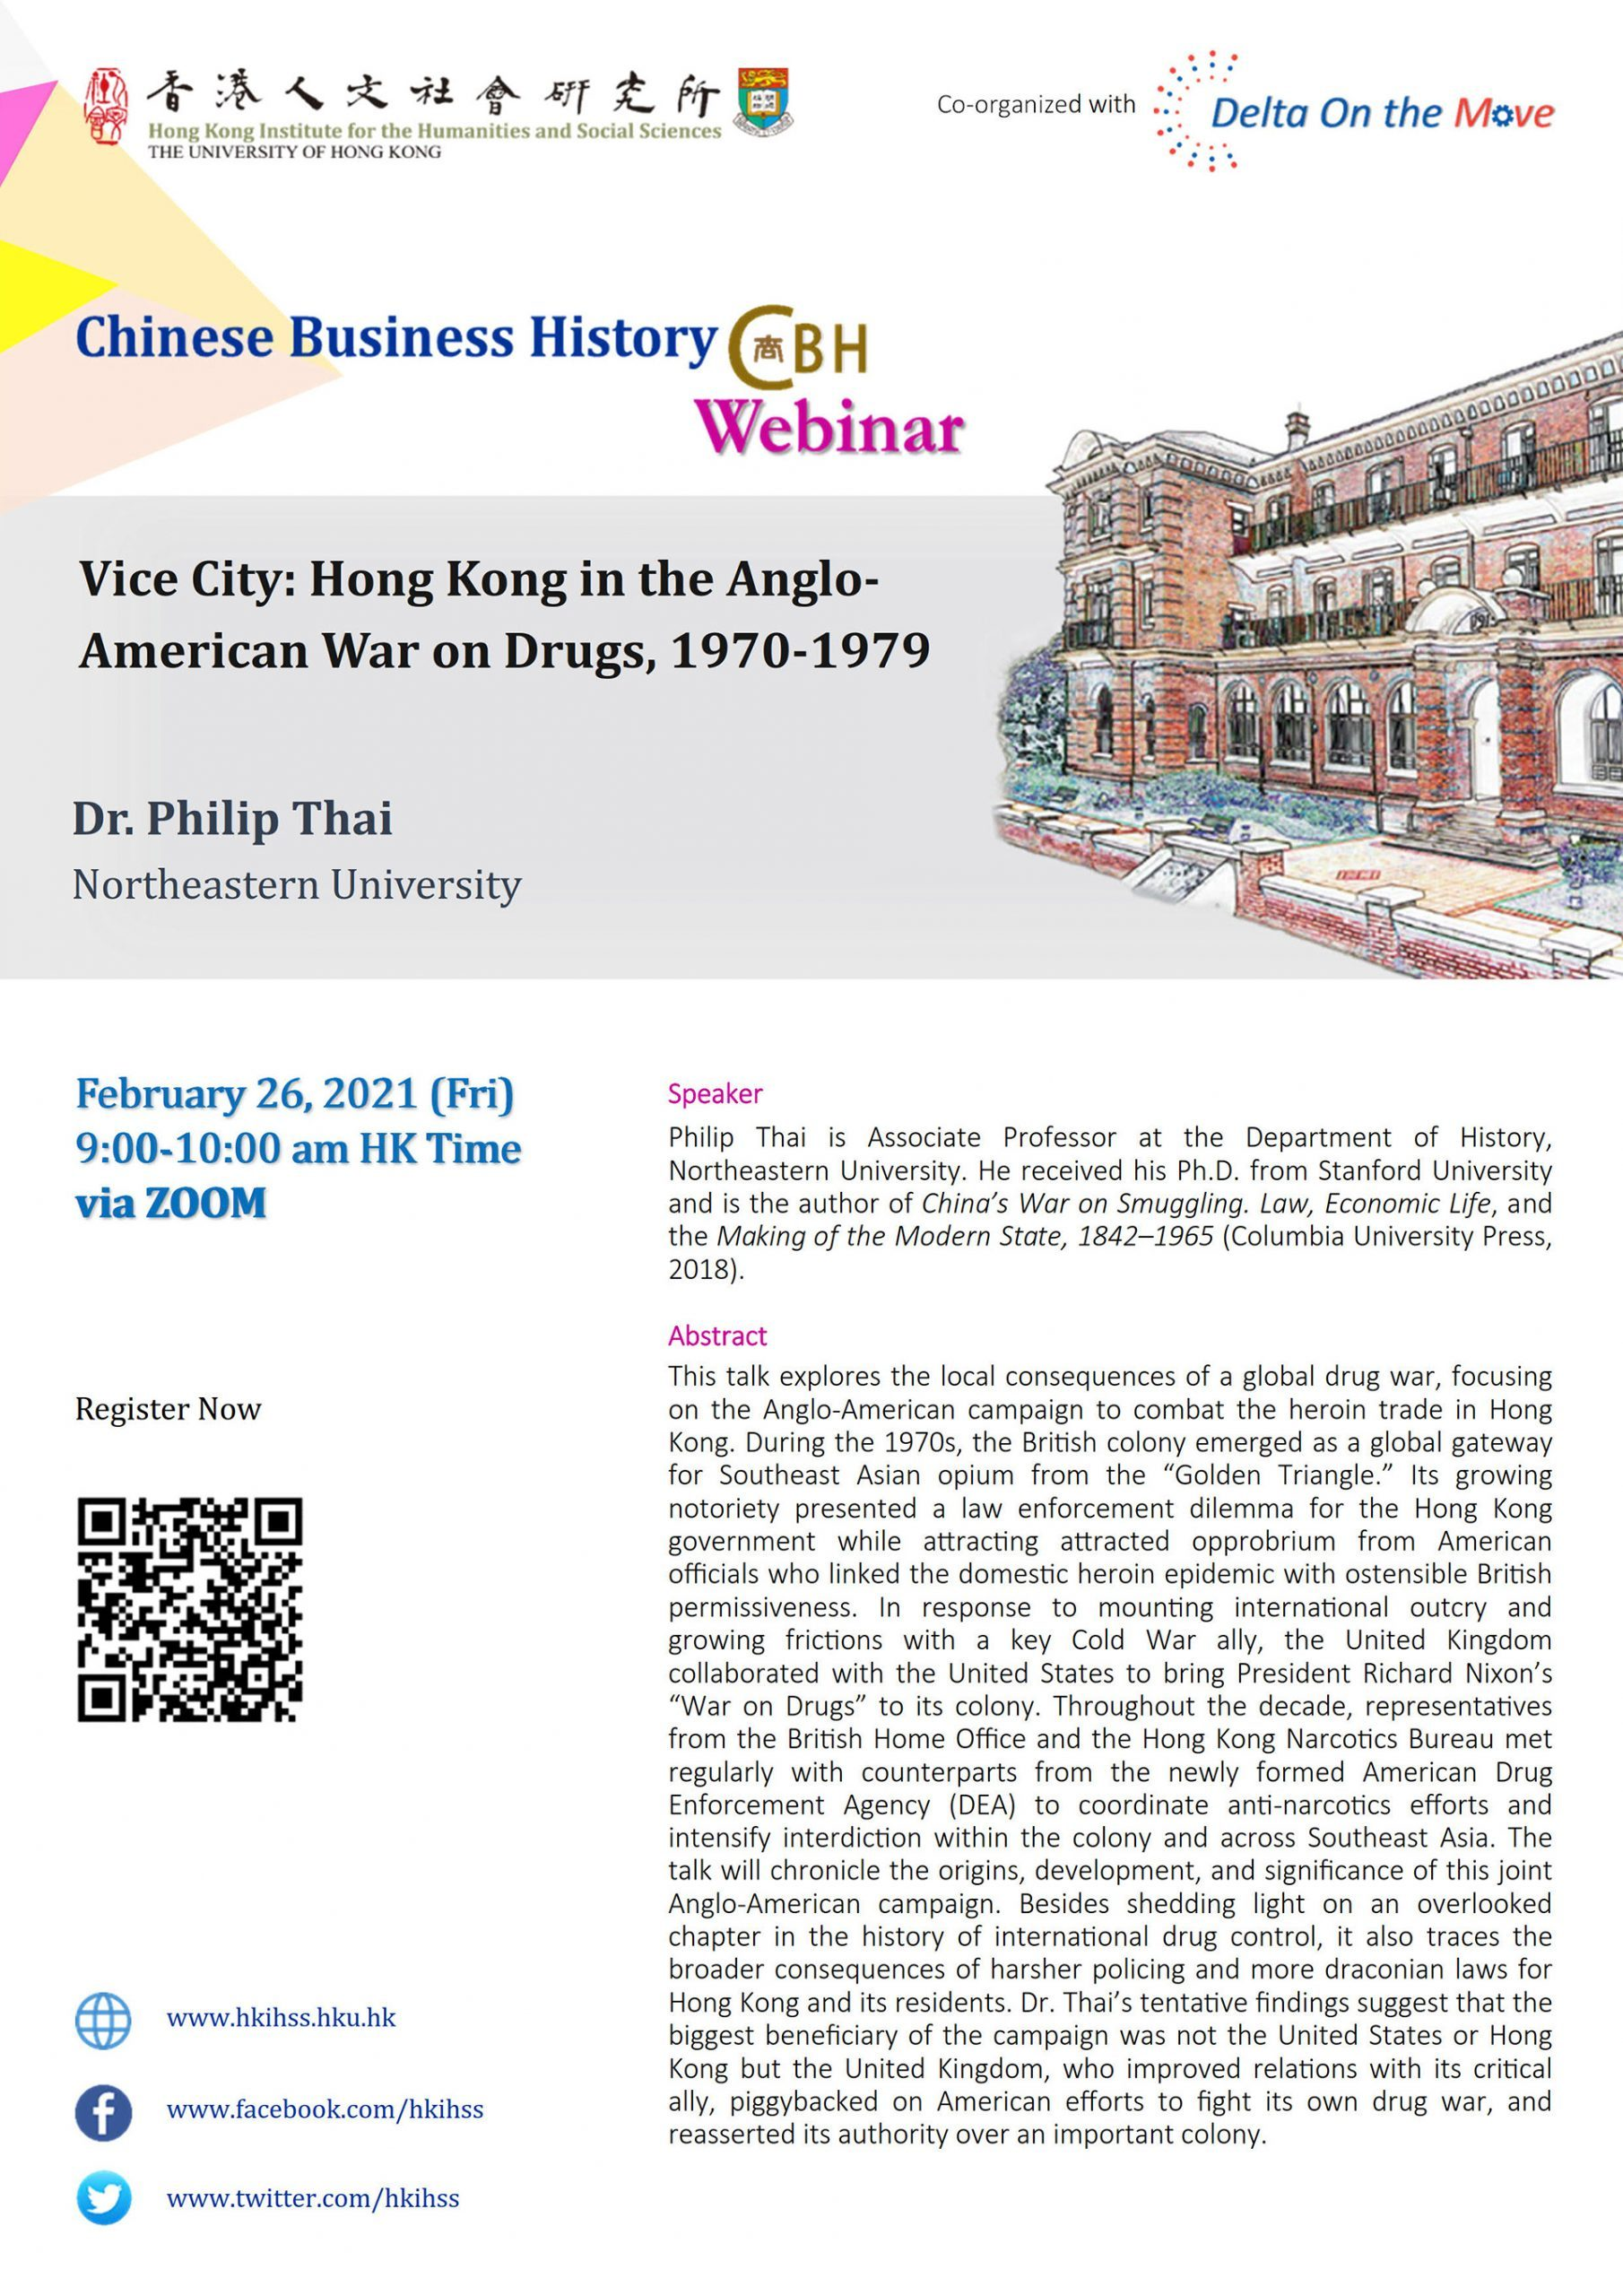 """Chinese Business History Webinar on """"Vice City: Hong Kong in the Anglo-American War on Drugs, 1970-1979"""" by Dr. Philip Thai (February 26, 2021)"""